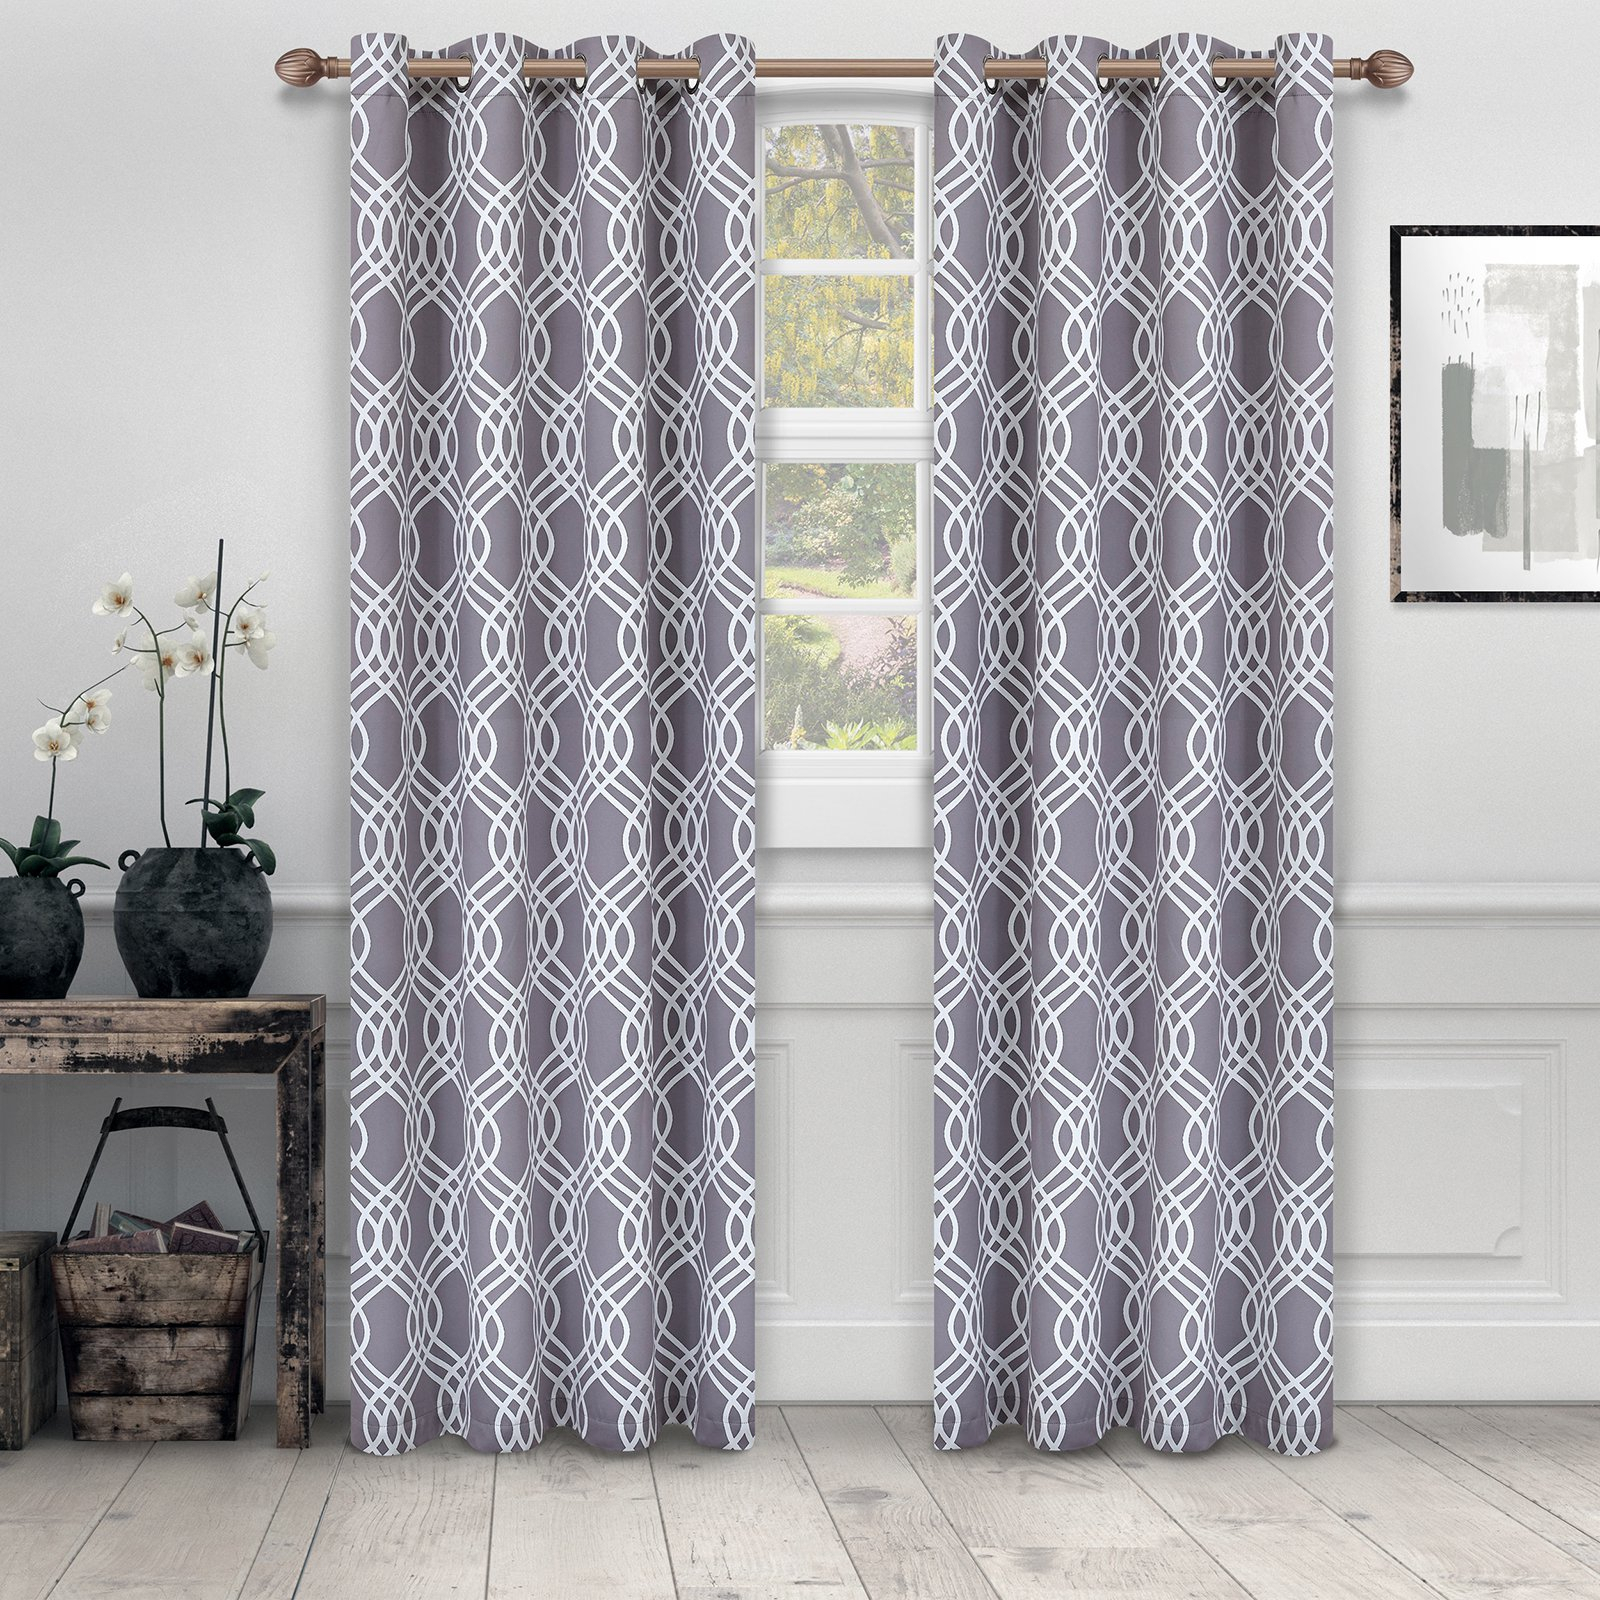 Superior Ribbon Blackout 2 Panel Curtains Gray In 2019 With Regard To Superior Leaves Insulated Thermal Blackout Grommet Curtain Panel Pairs (View 12 of 30)